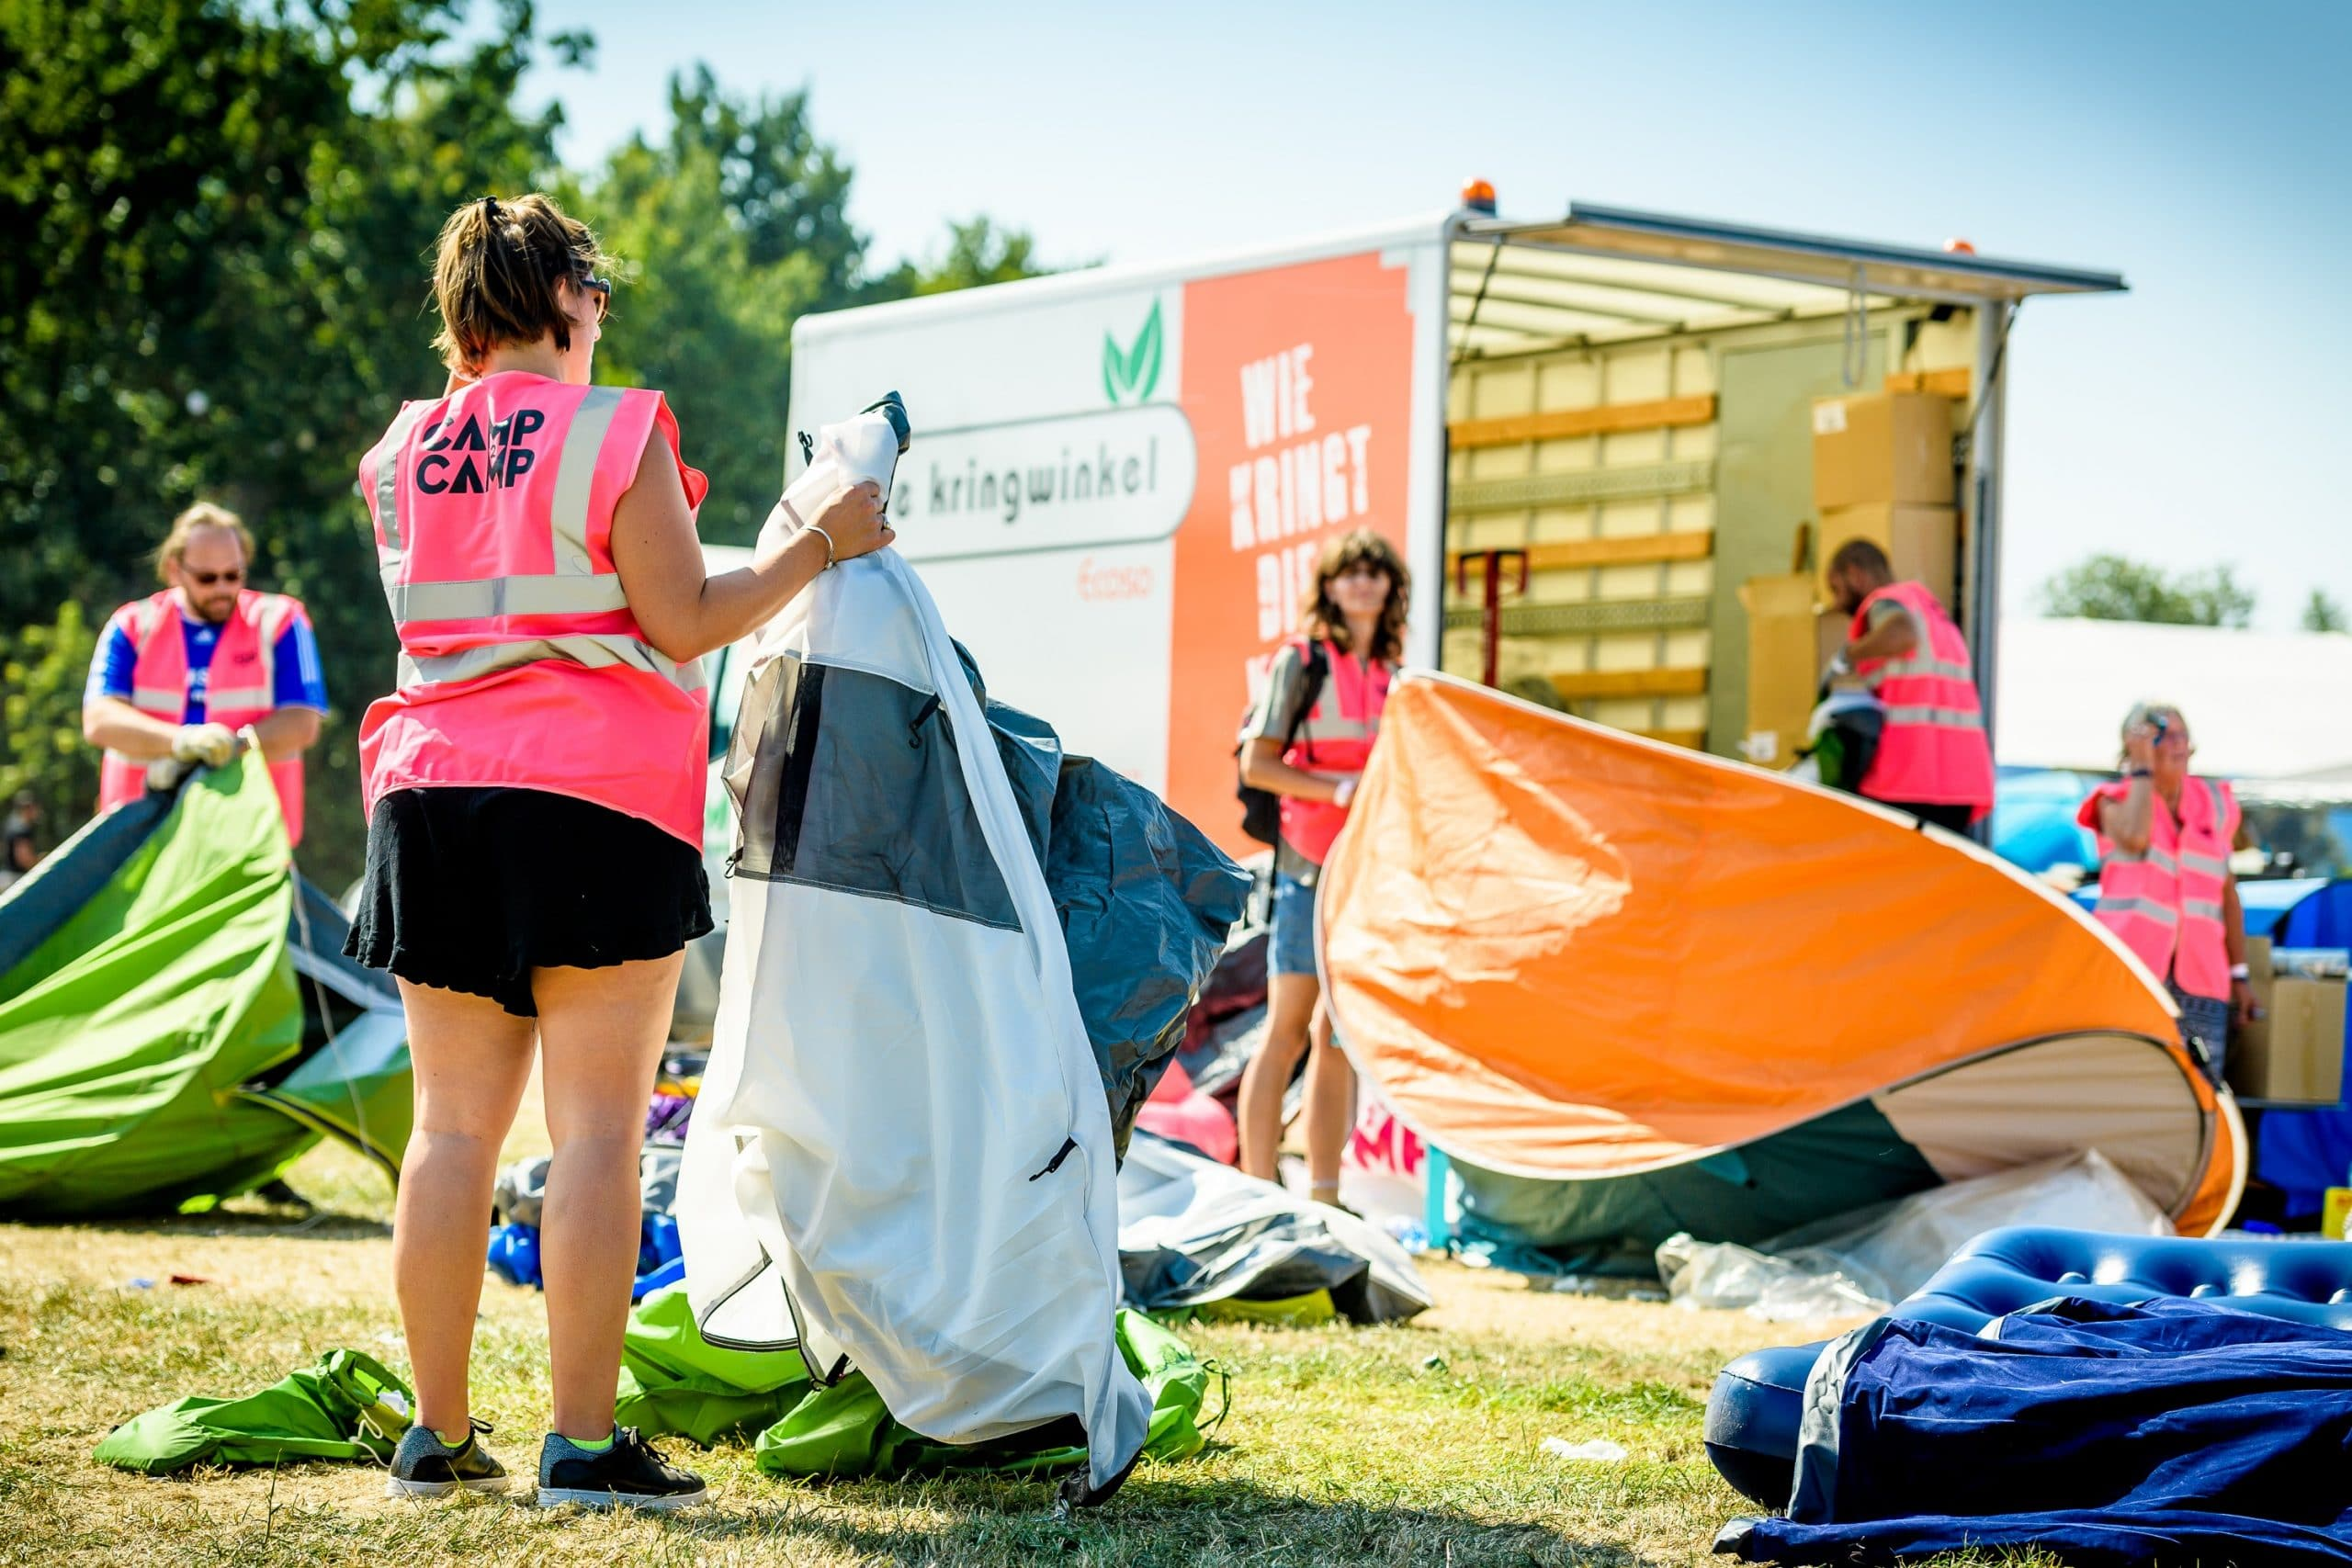 World-famous festival to stop mountains of re-usable camping gear being thrown away